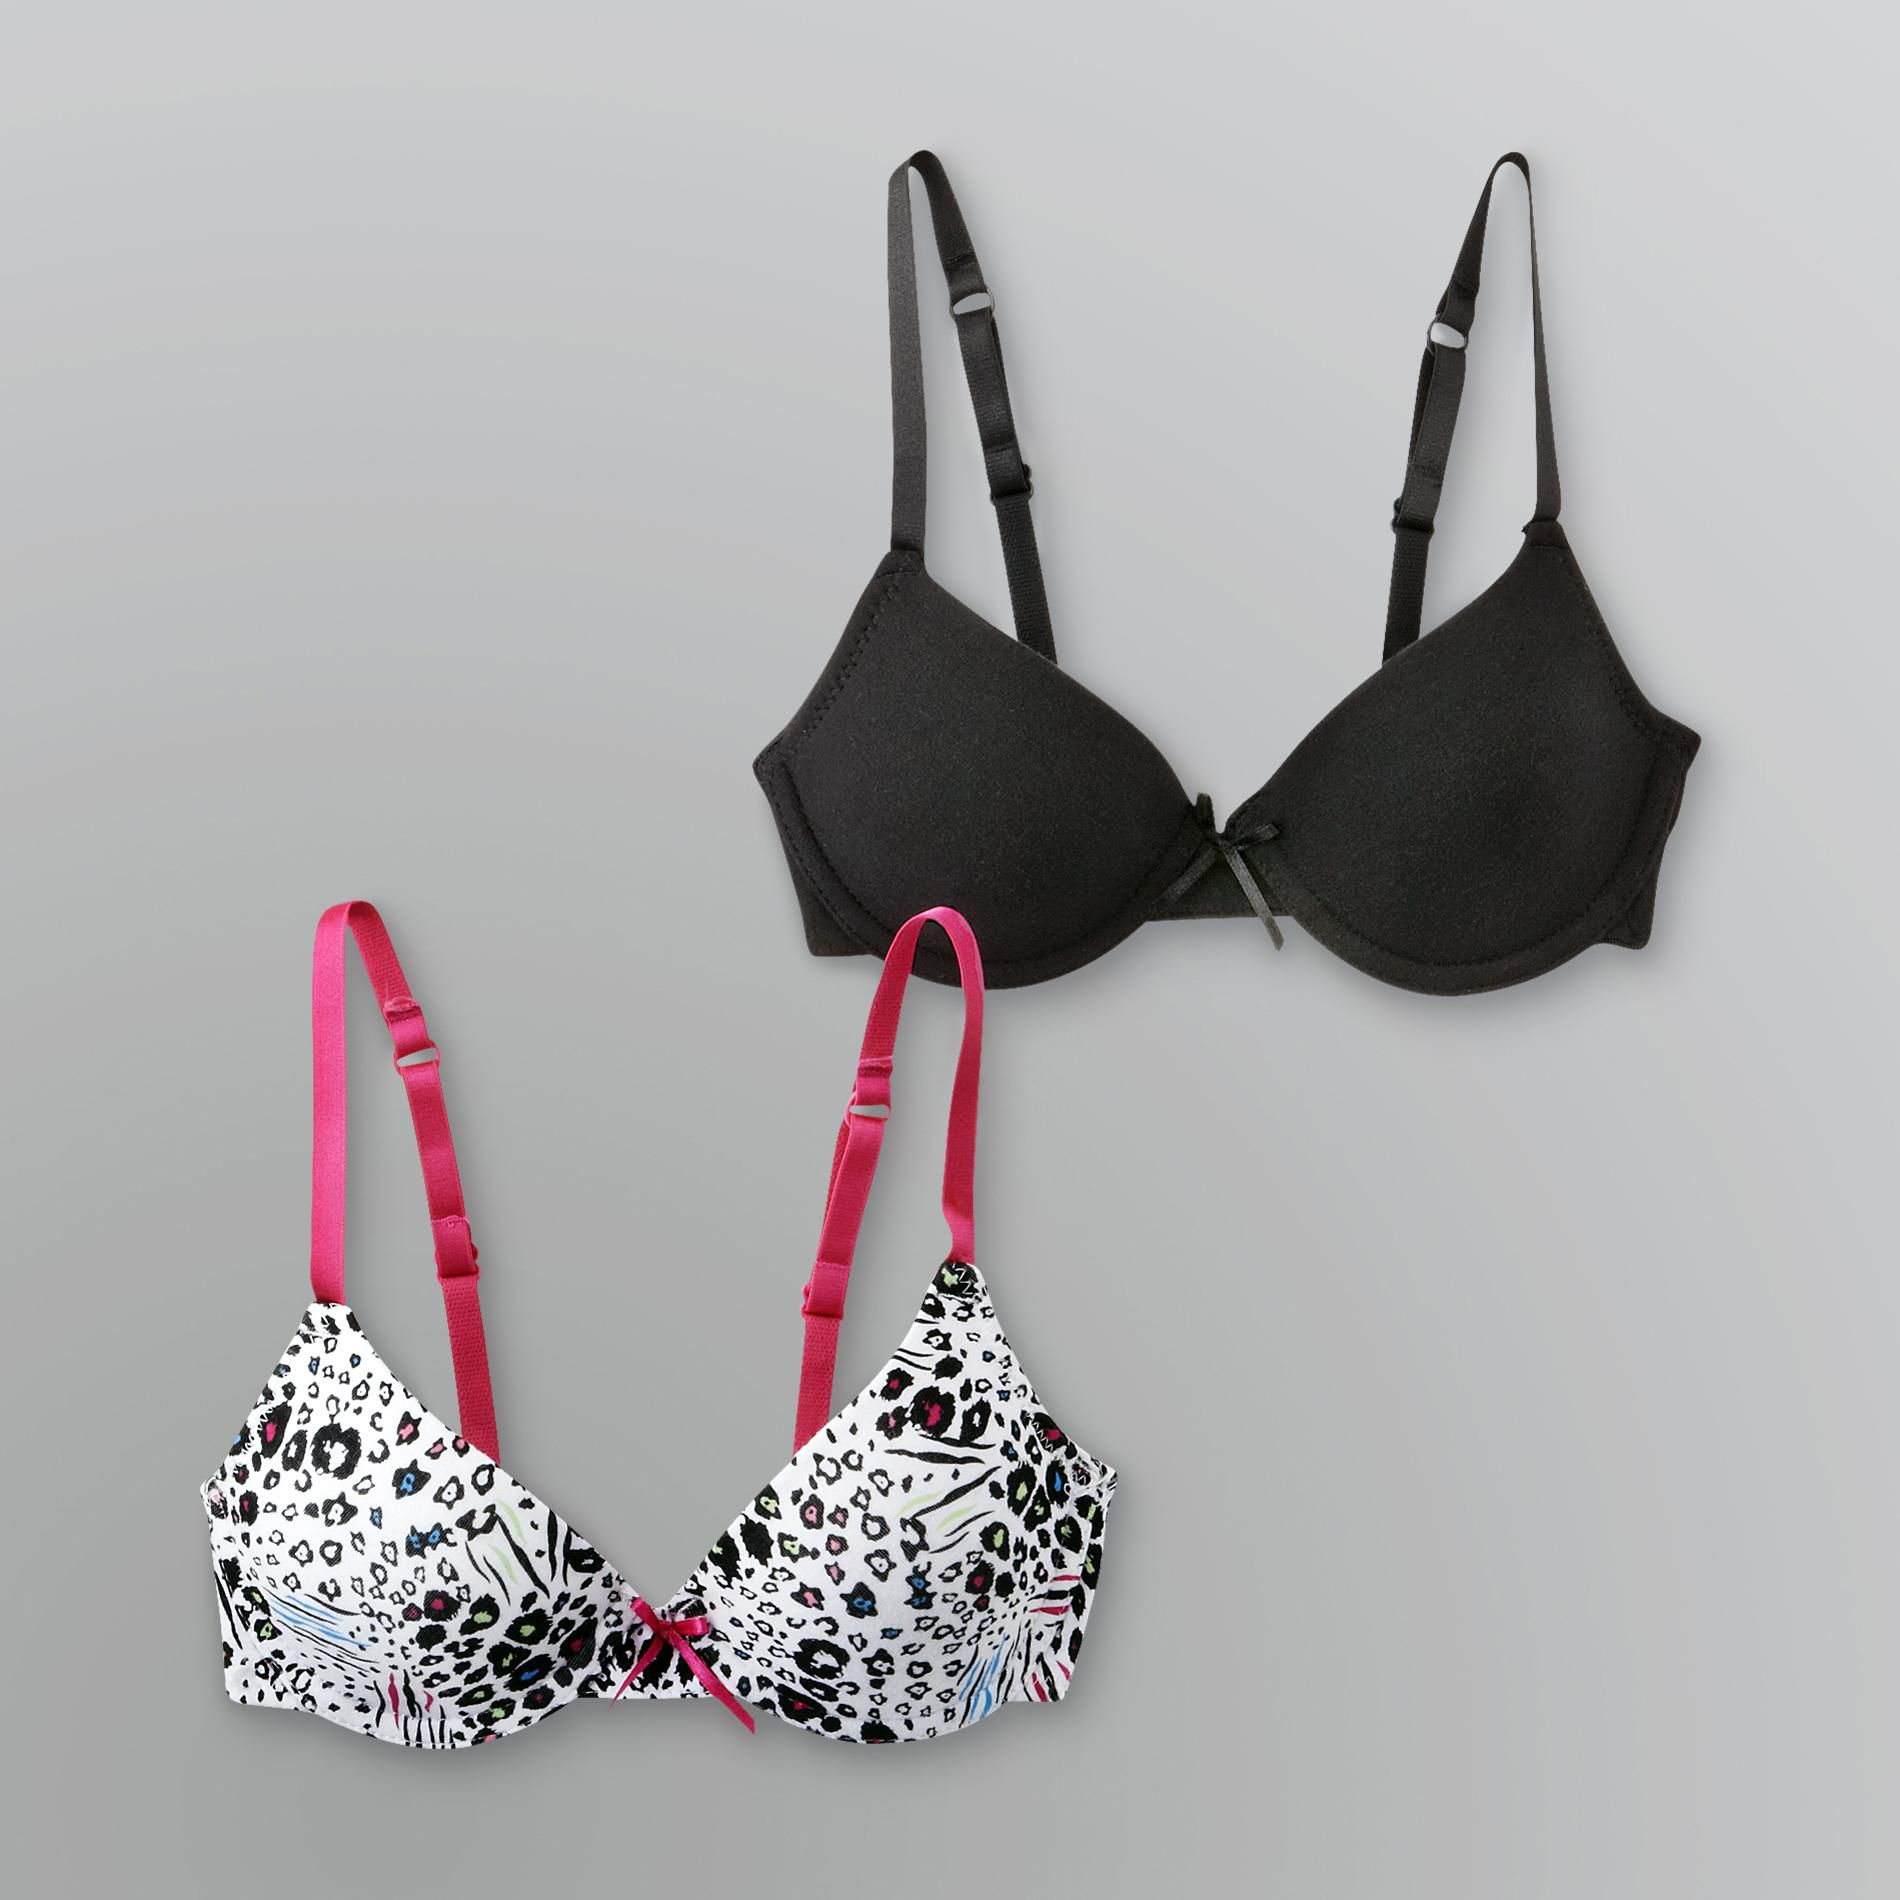 Girl's Molded Underwire Bras - 2 Pc.